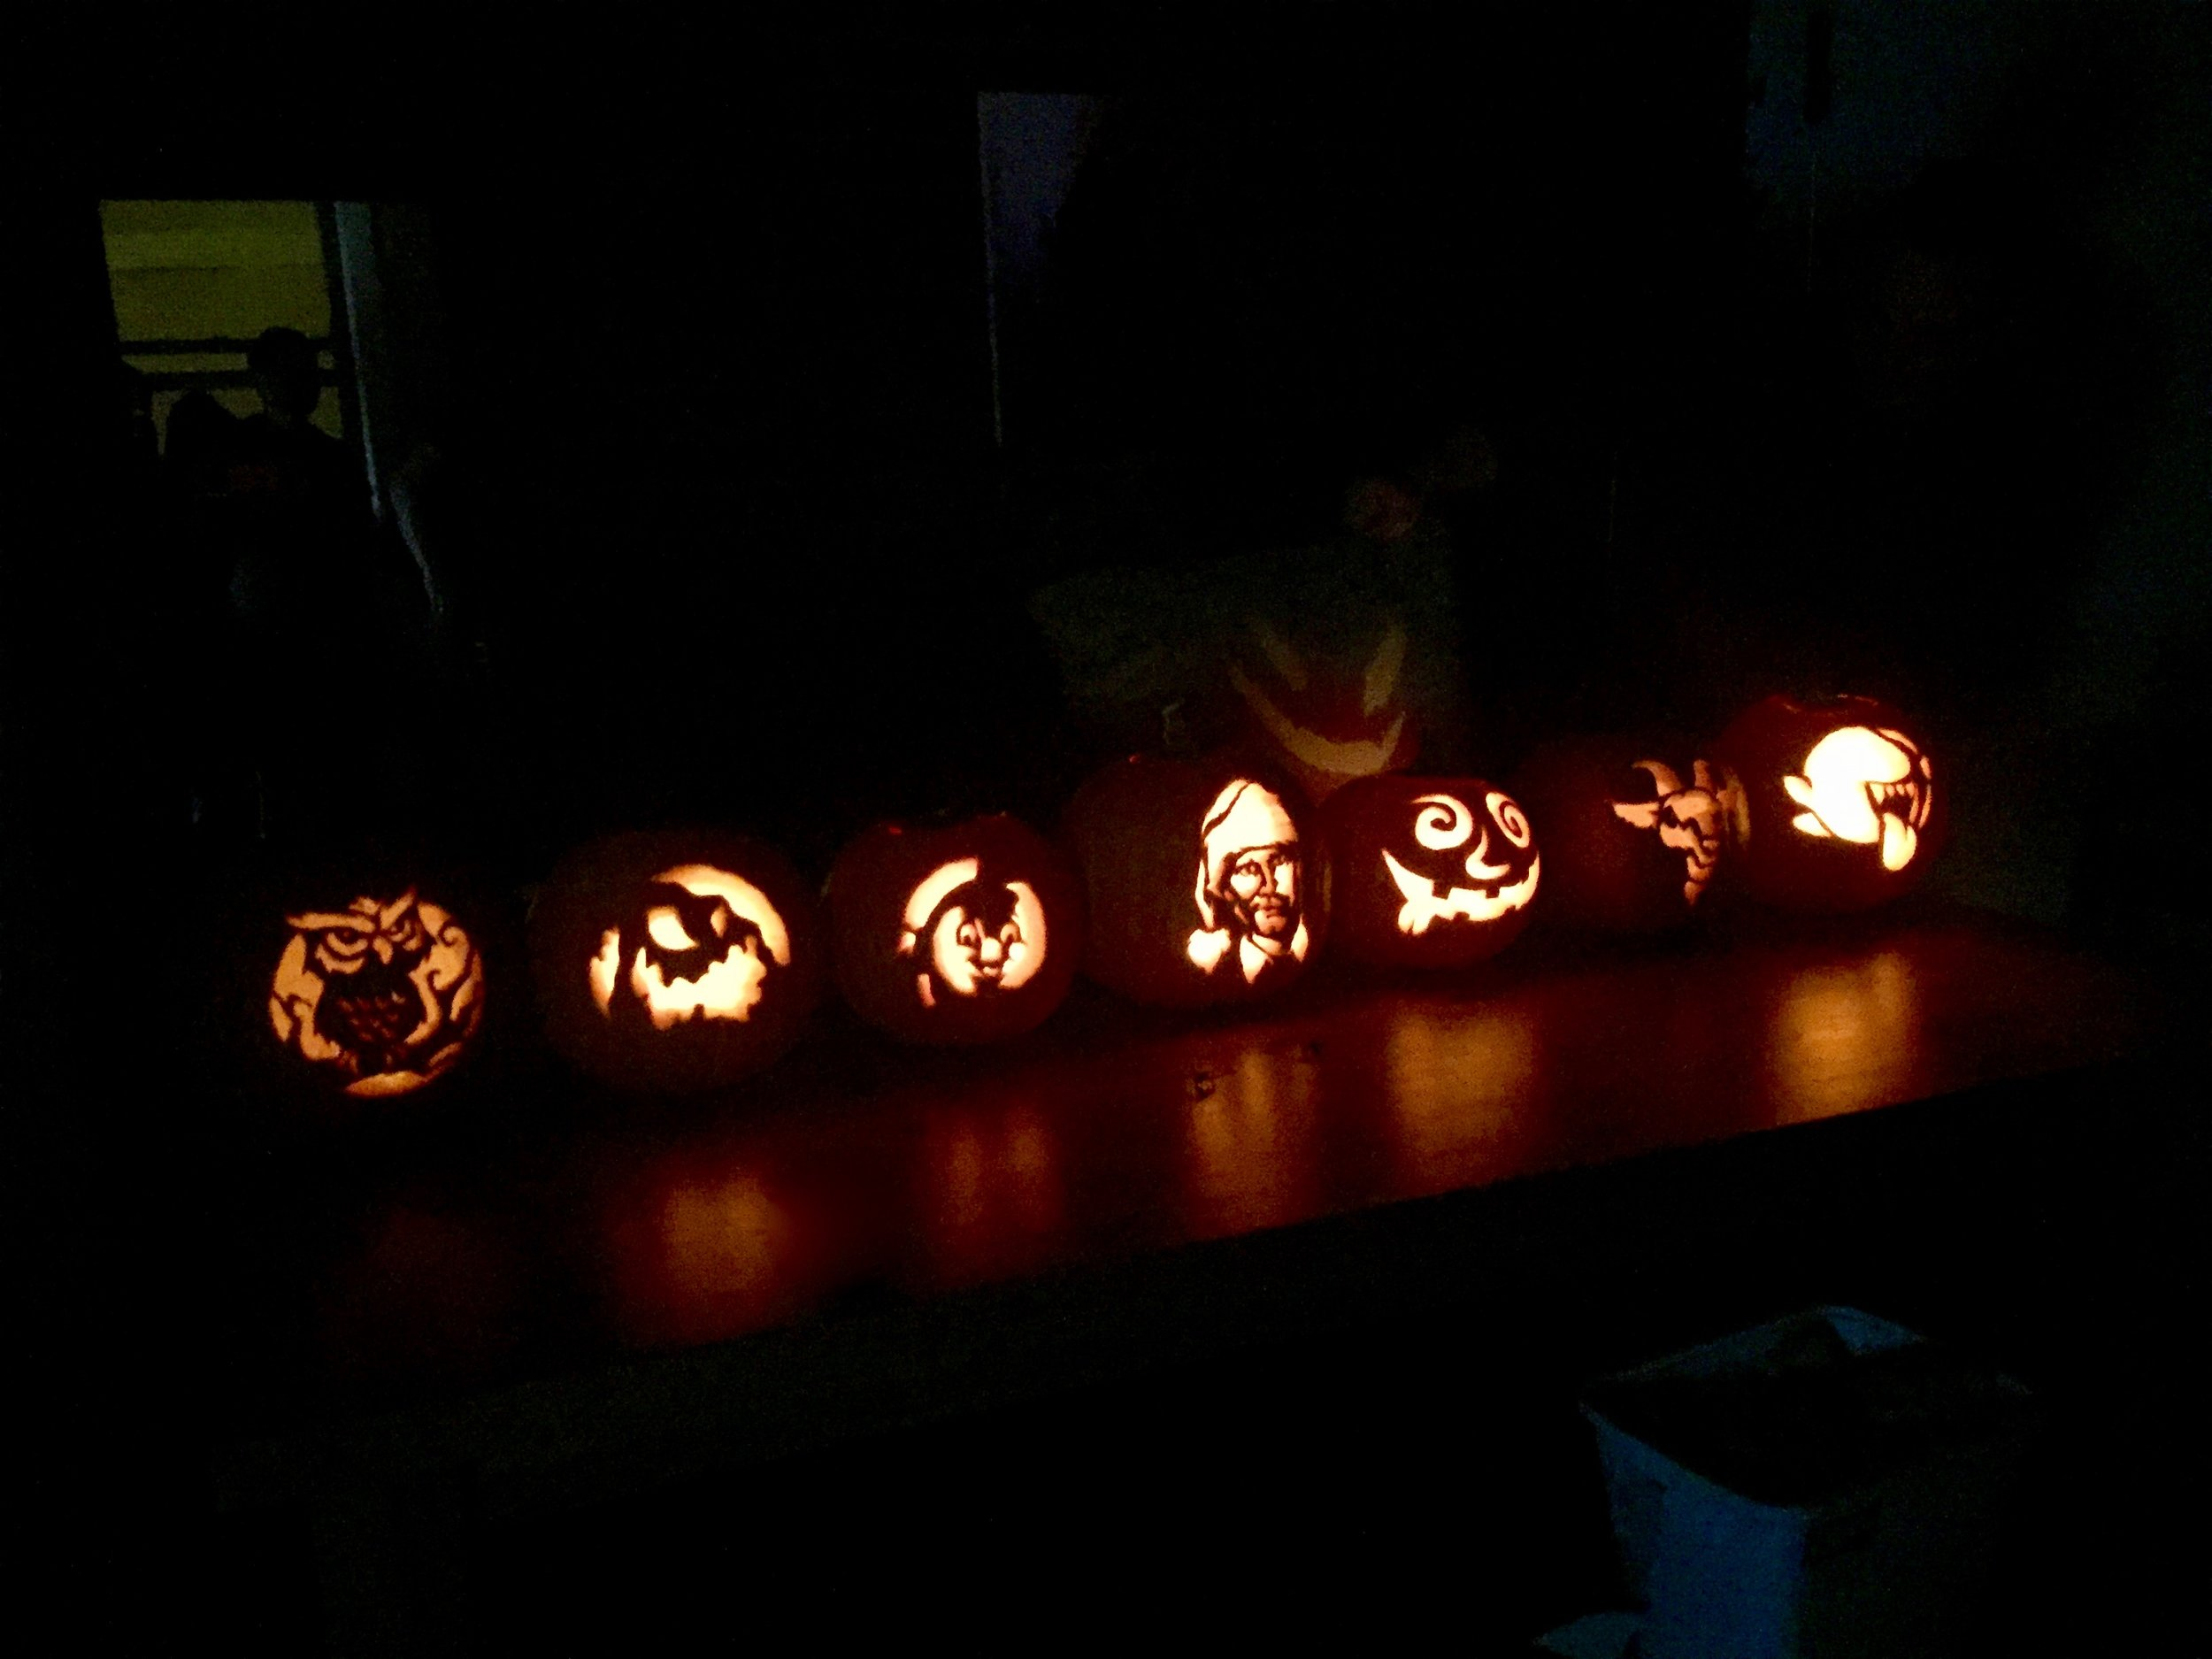 The spooky shadow behind the pumpkins.